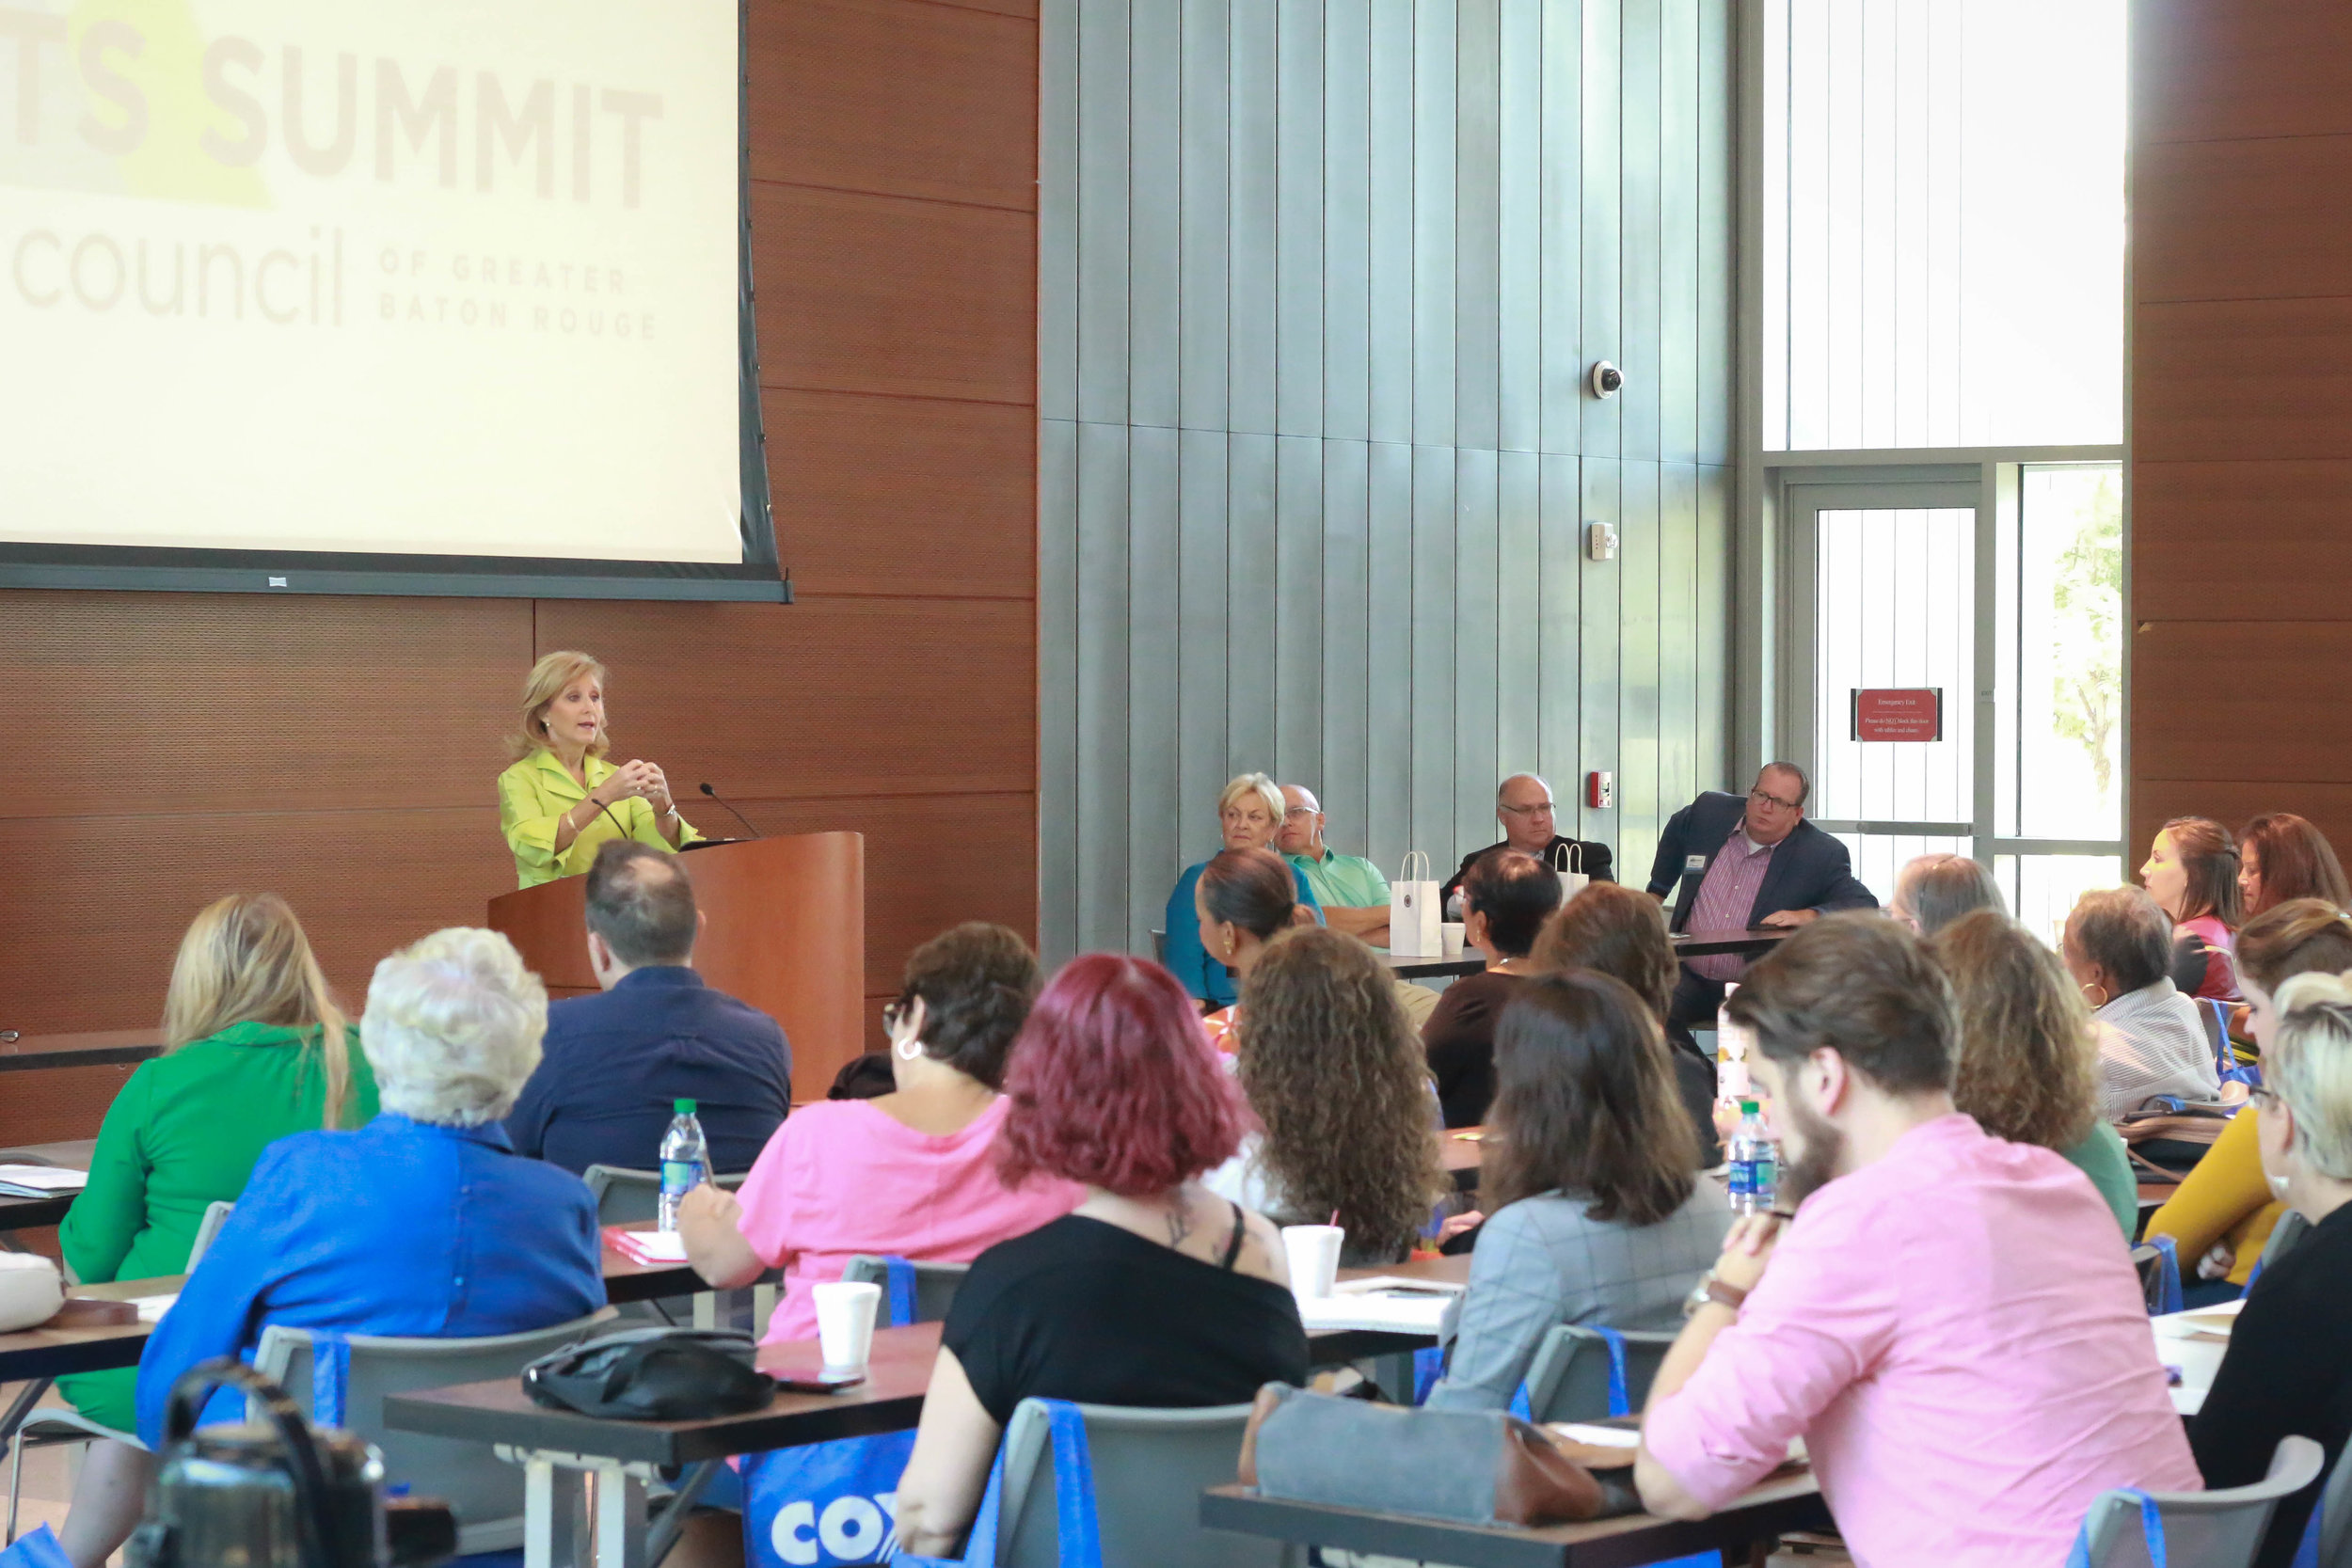 Arts Summit Day 2 featured a full day of workshops, panel discussions and interactive sessions at the East Baton Rouge Parish Library on Goodwood Boulevard, with a welcome address by First Lady Donna Edwards.